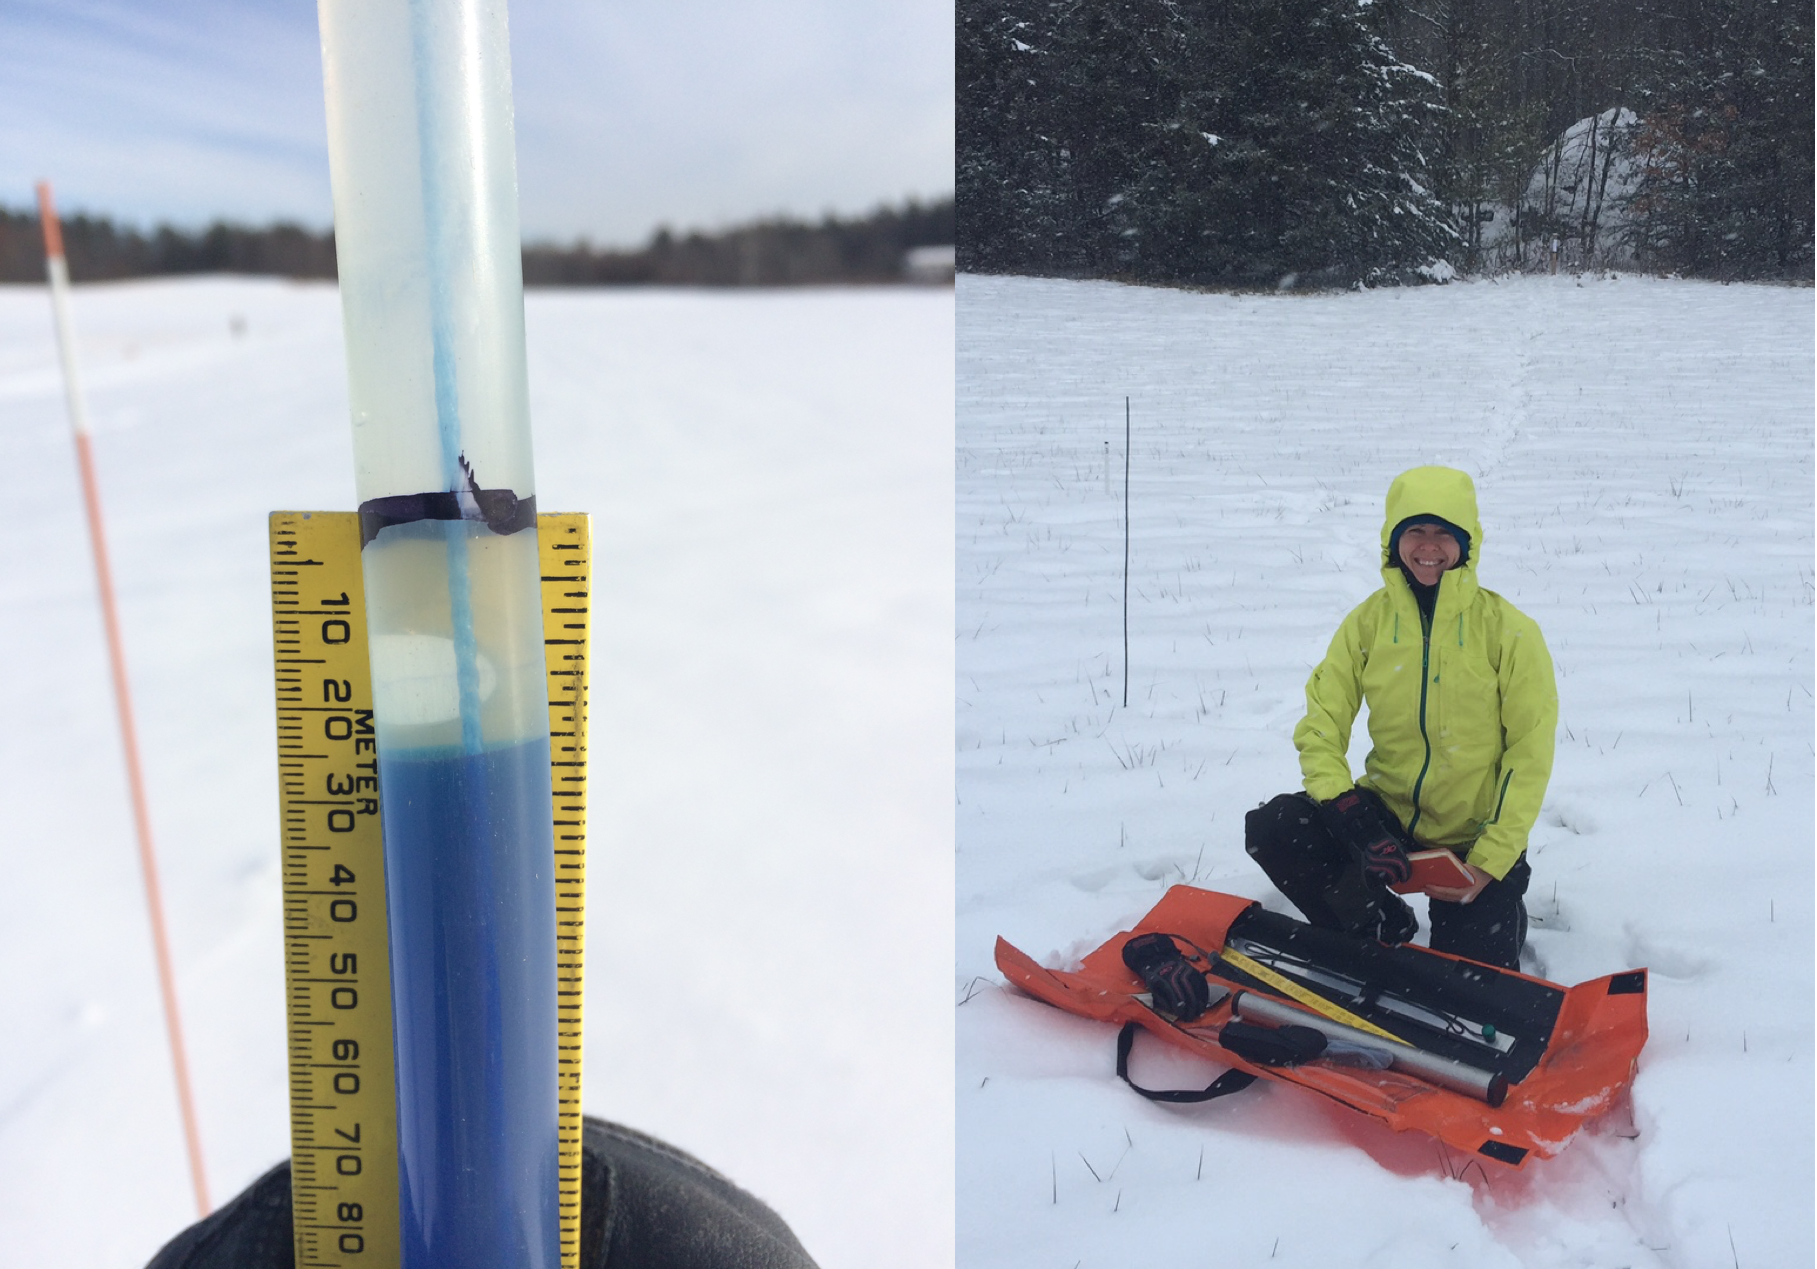 A low-cost ($25) soil frost tube (left) constructed from flexible PVC tubing and filled with a solution of methylene blue and water; the partner project lead, Dr. Elizabeth Burakowski, measuring snow at a local field site in New Hampshire.